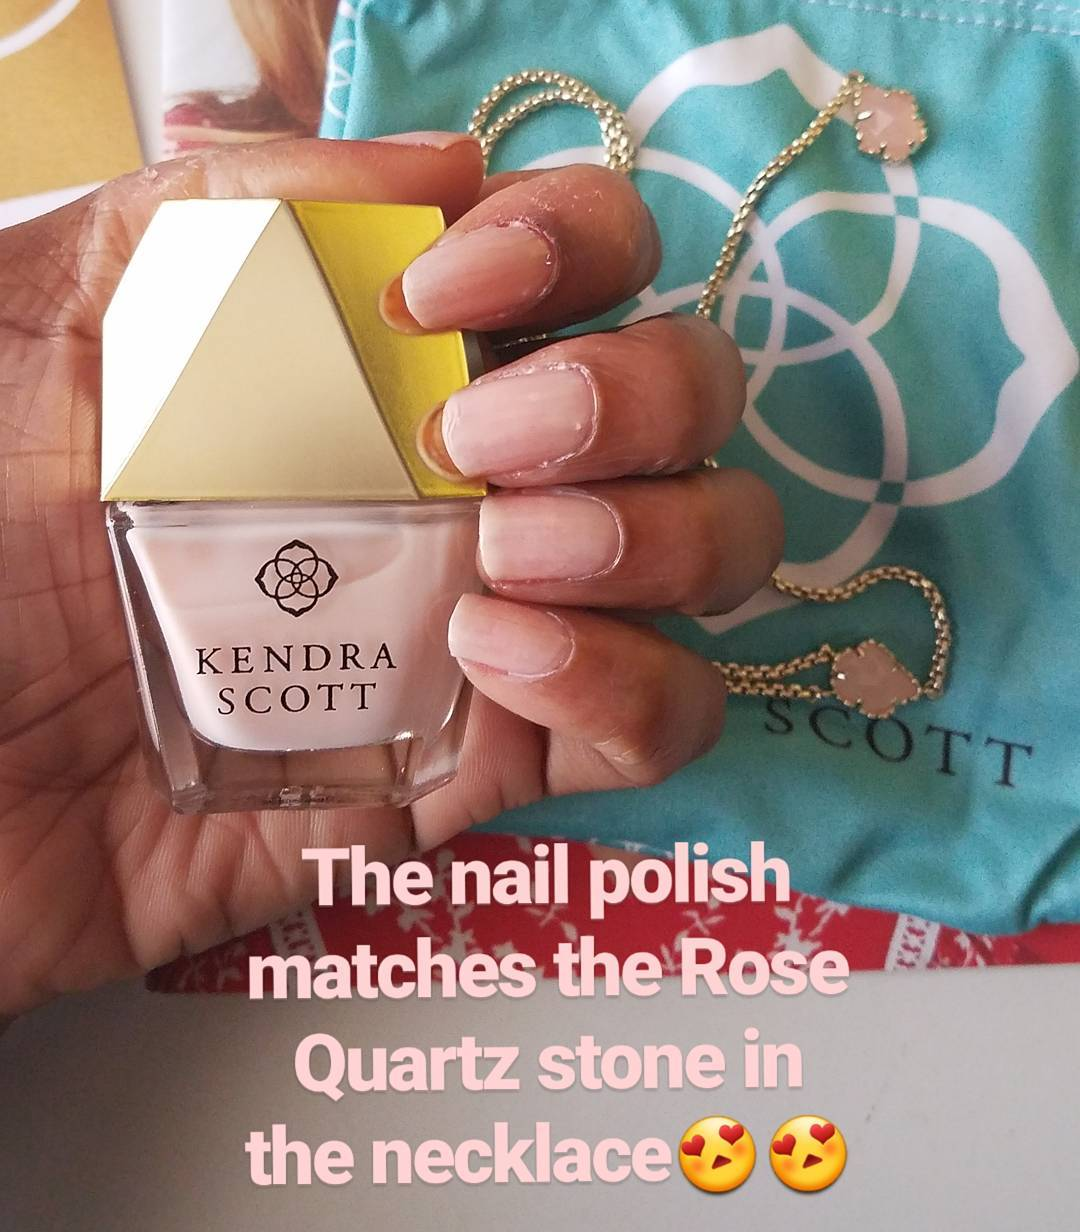 Goodies from the kendrascott Color Bar party I attended withhellip